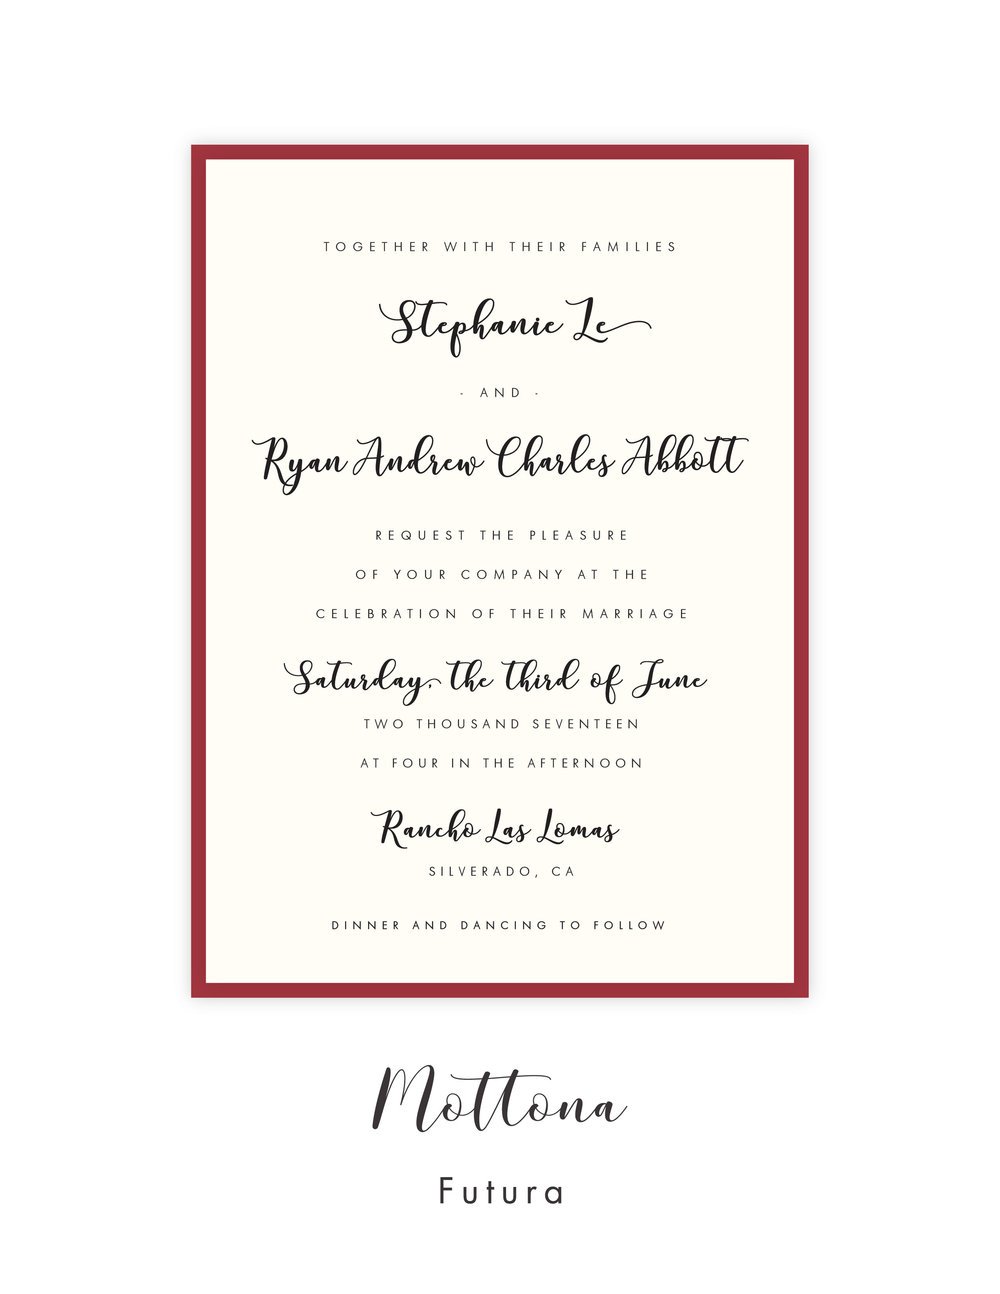 Wedding Fonts_Mottona.jpg